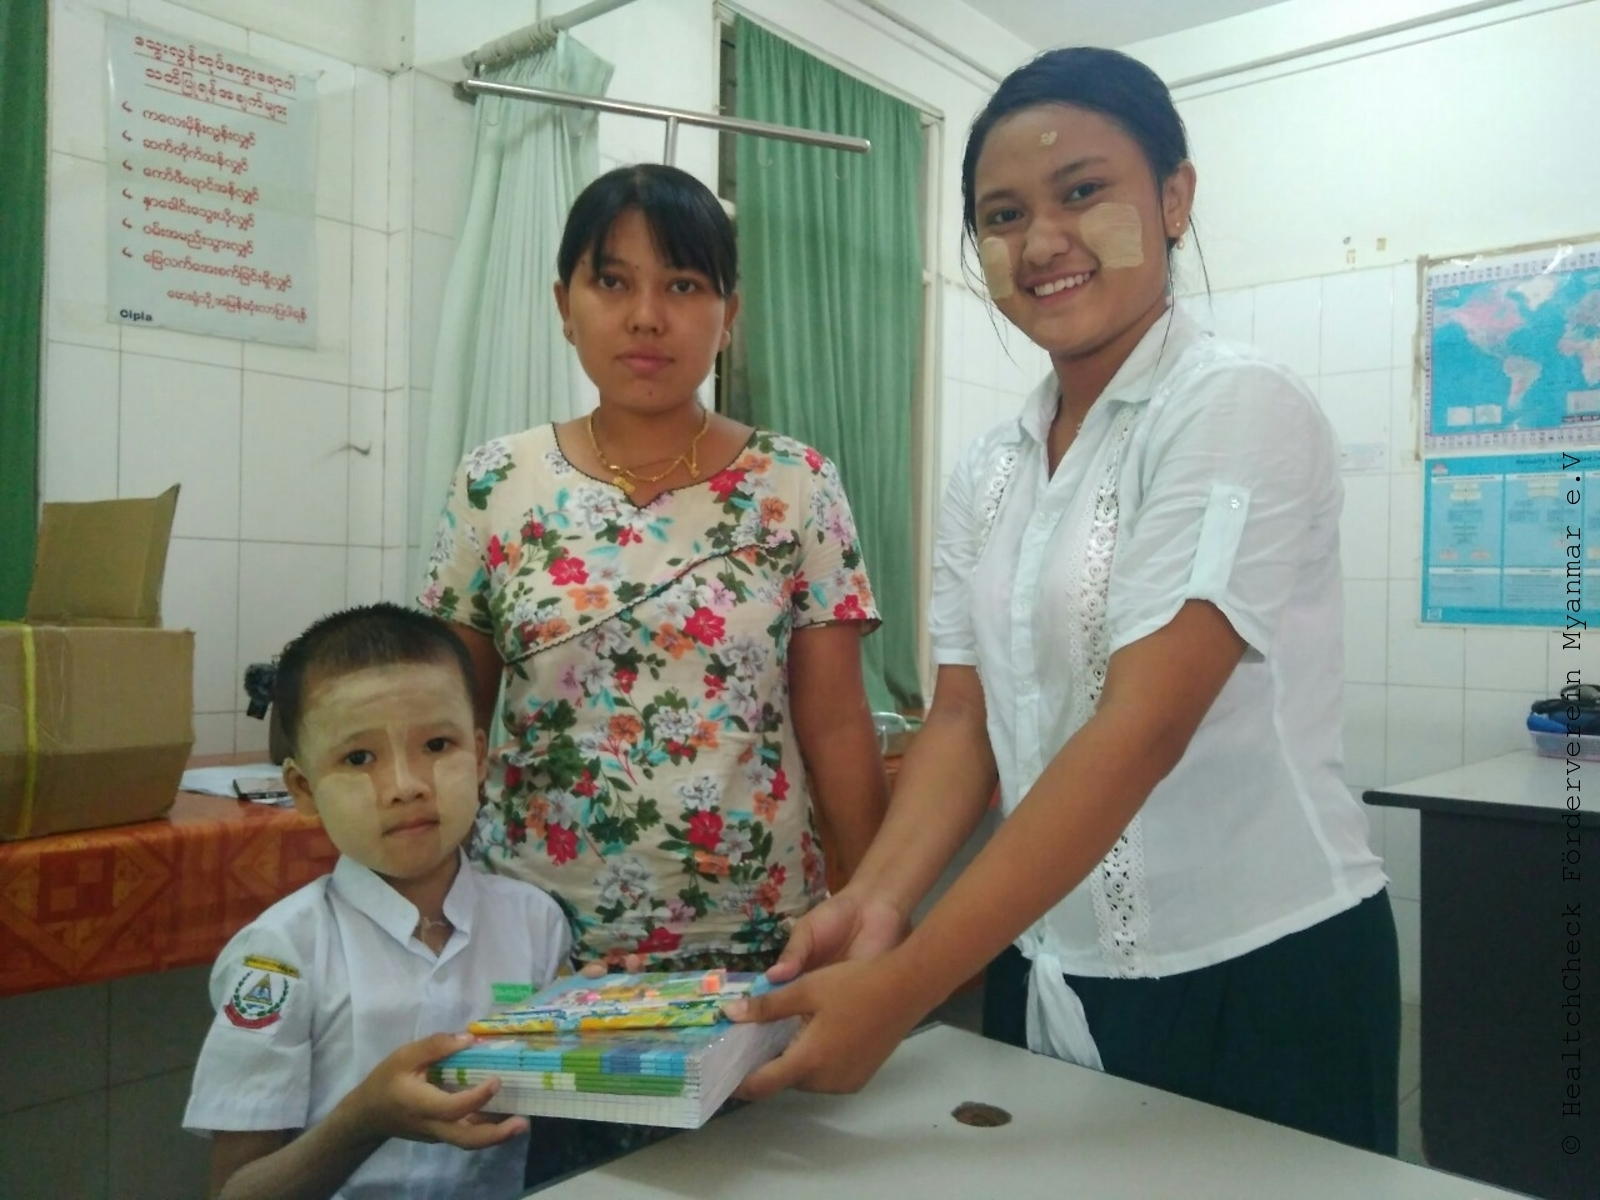 Wz Web HealthCheckMandalay 2